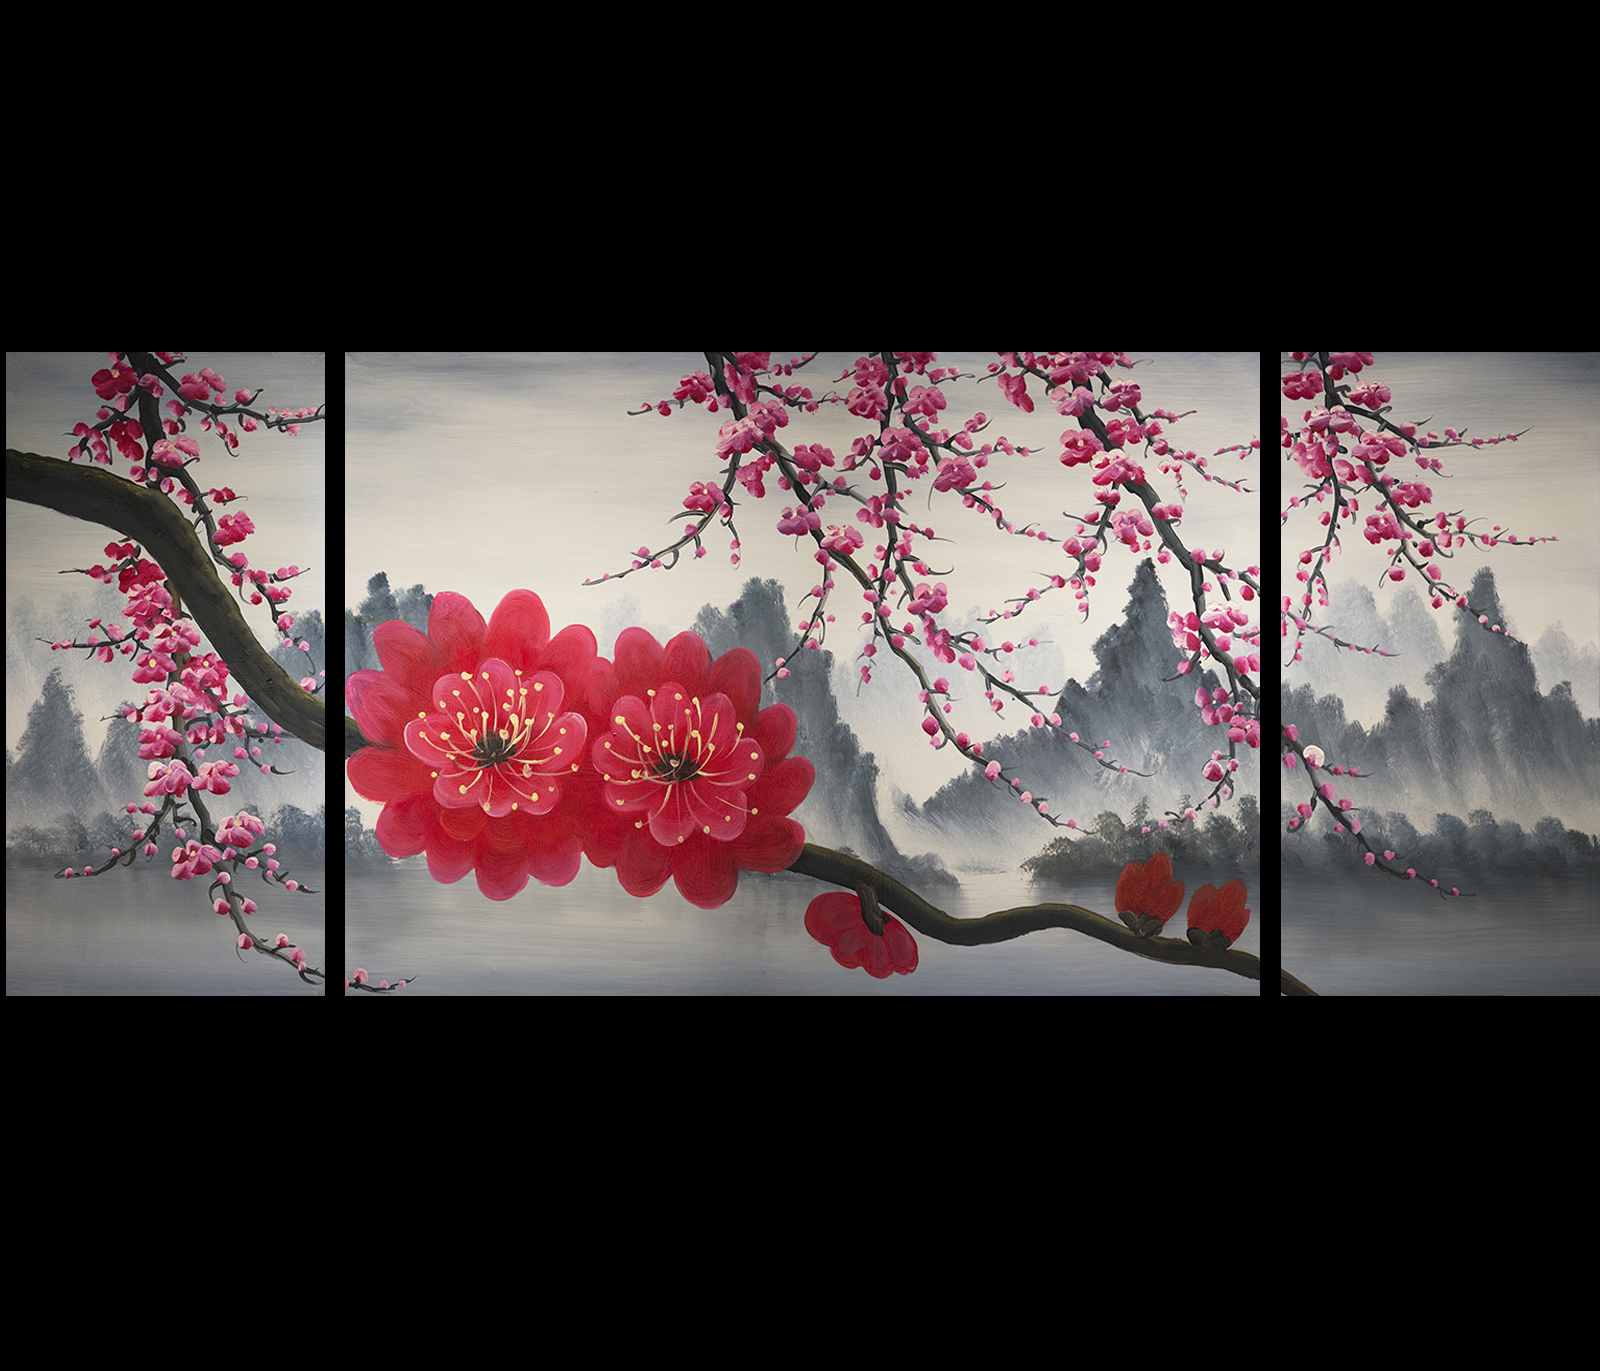 Feng shui canvas art prints giclee art prints on canvas for Cherry blossom mural works